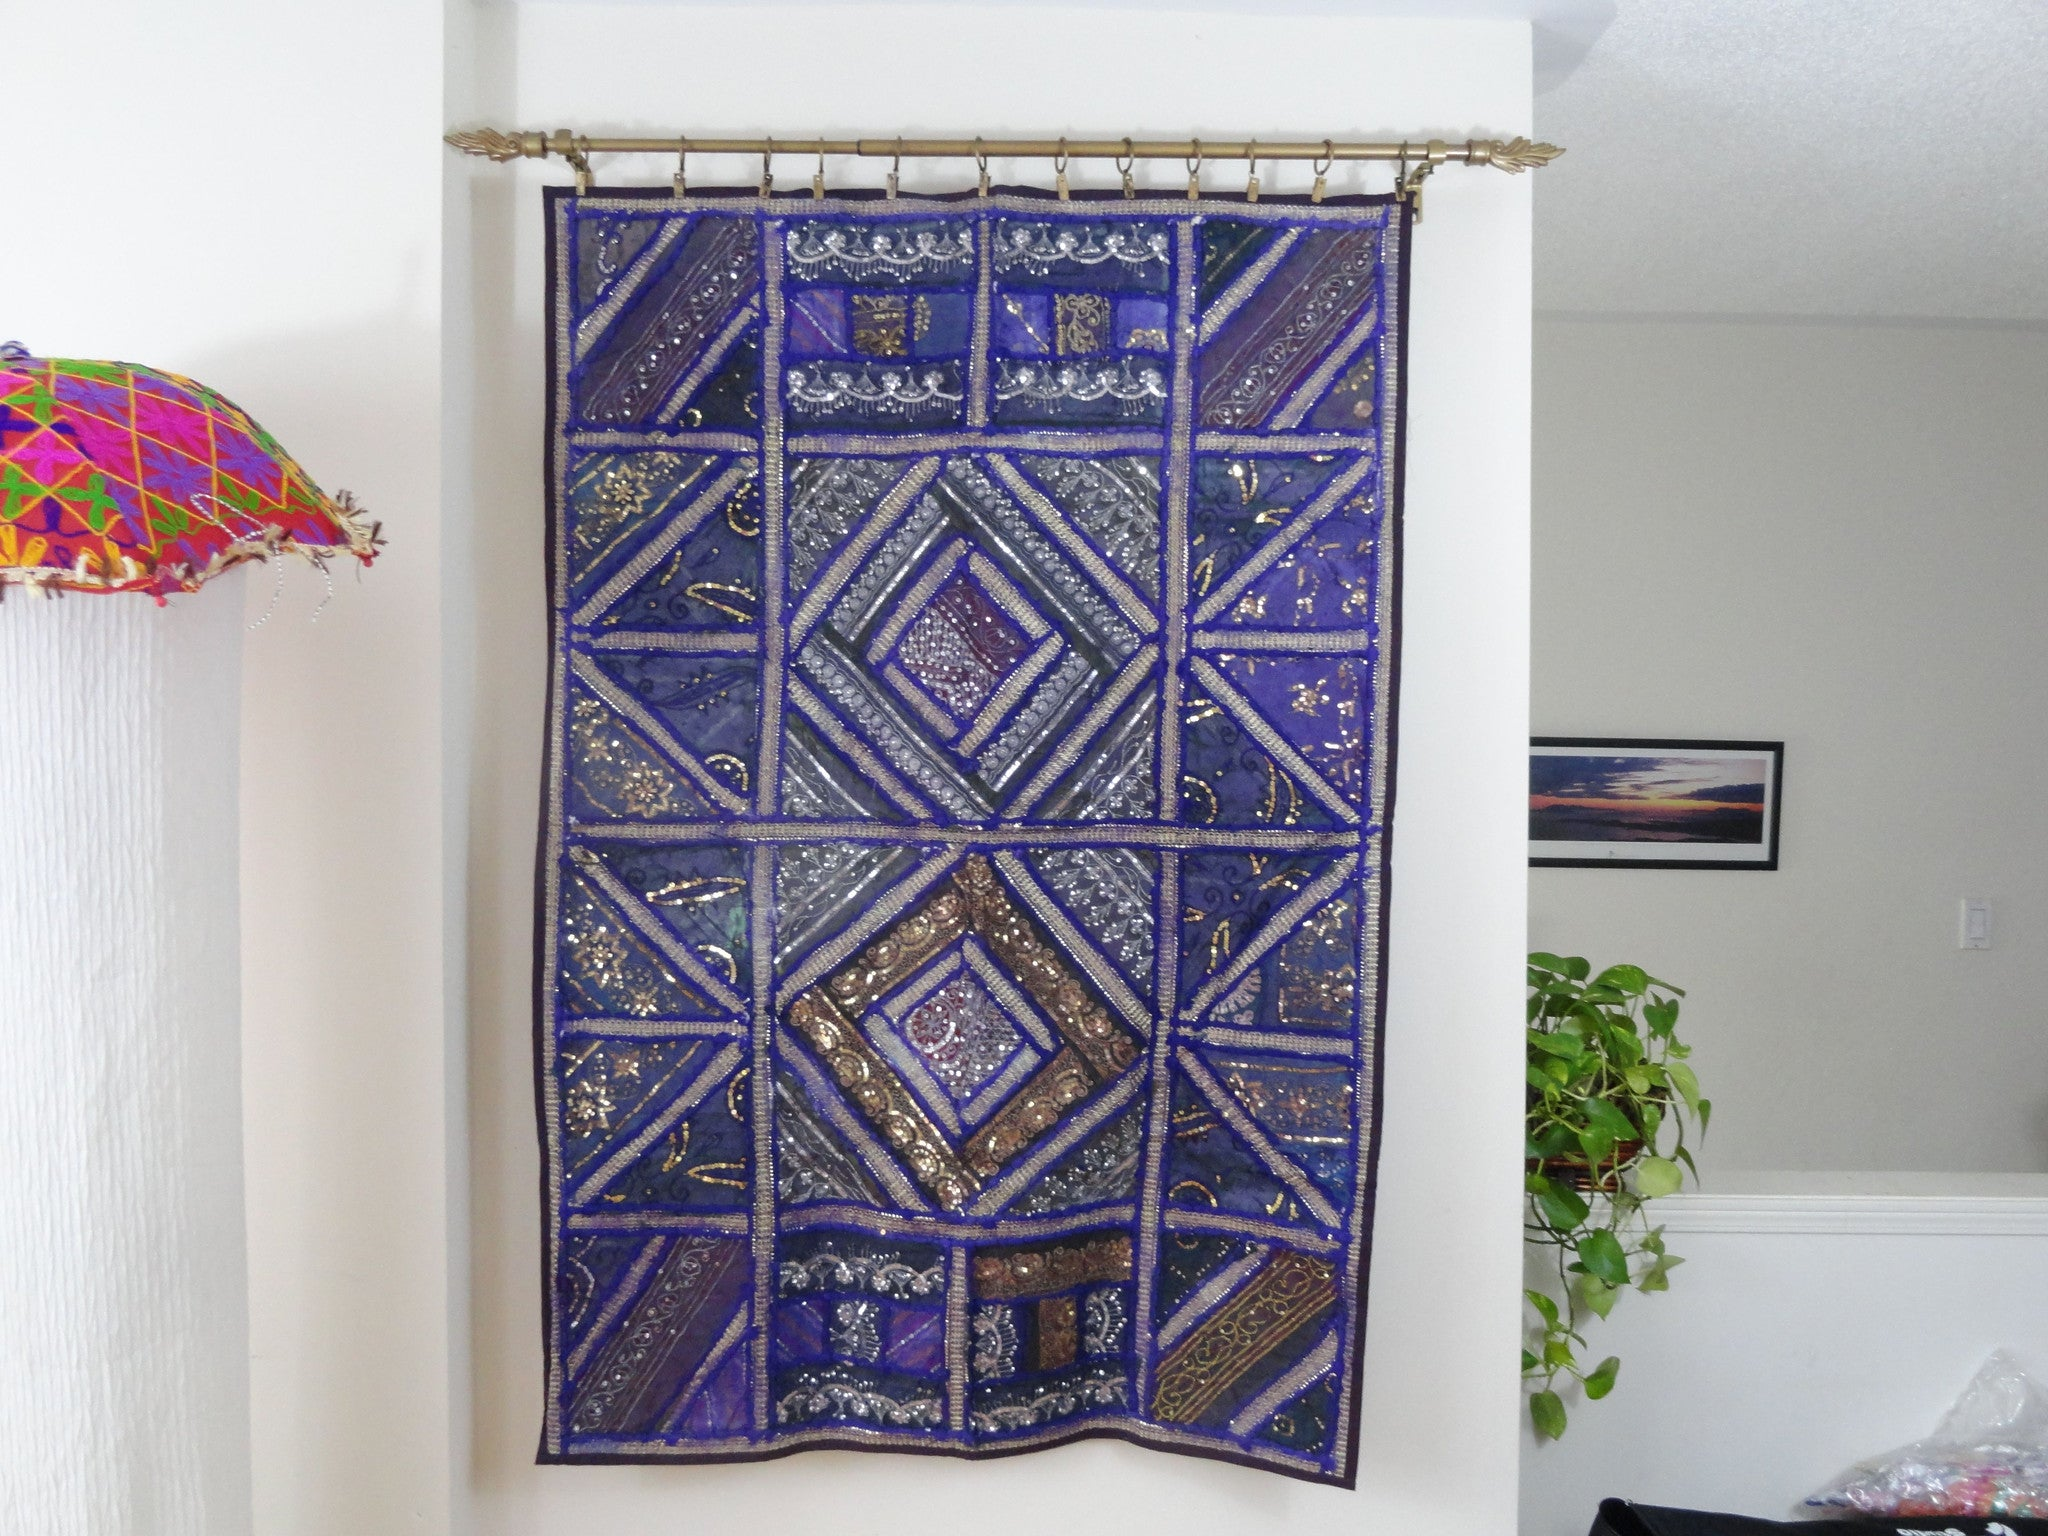 Fabric Wall Tapestry. Wall Hanging. Purple Strokes Embroidery And Patchwork Wall  Decor. Indian Ethnic Wall Tapestry Artikrti